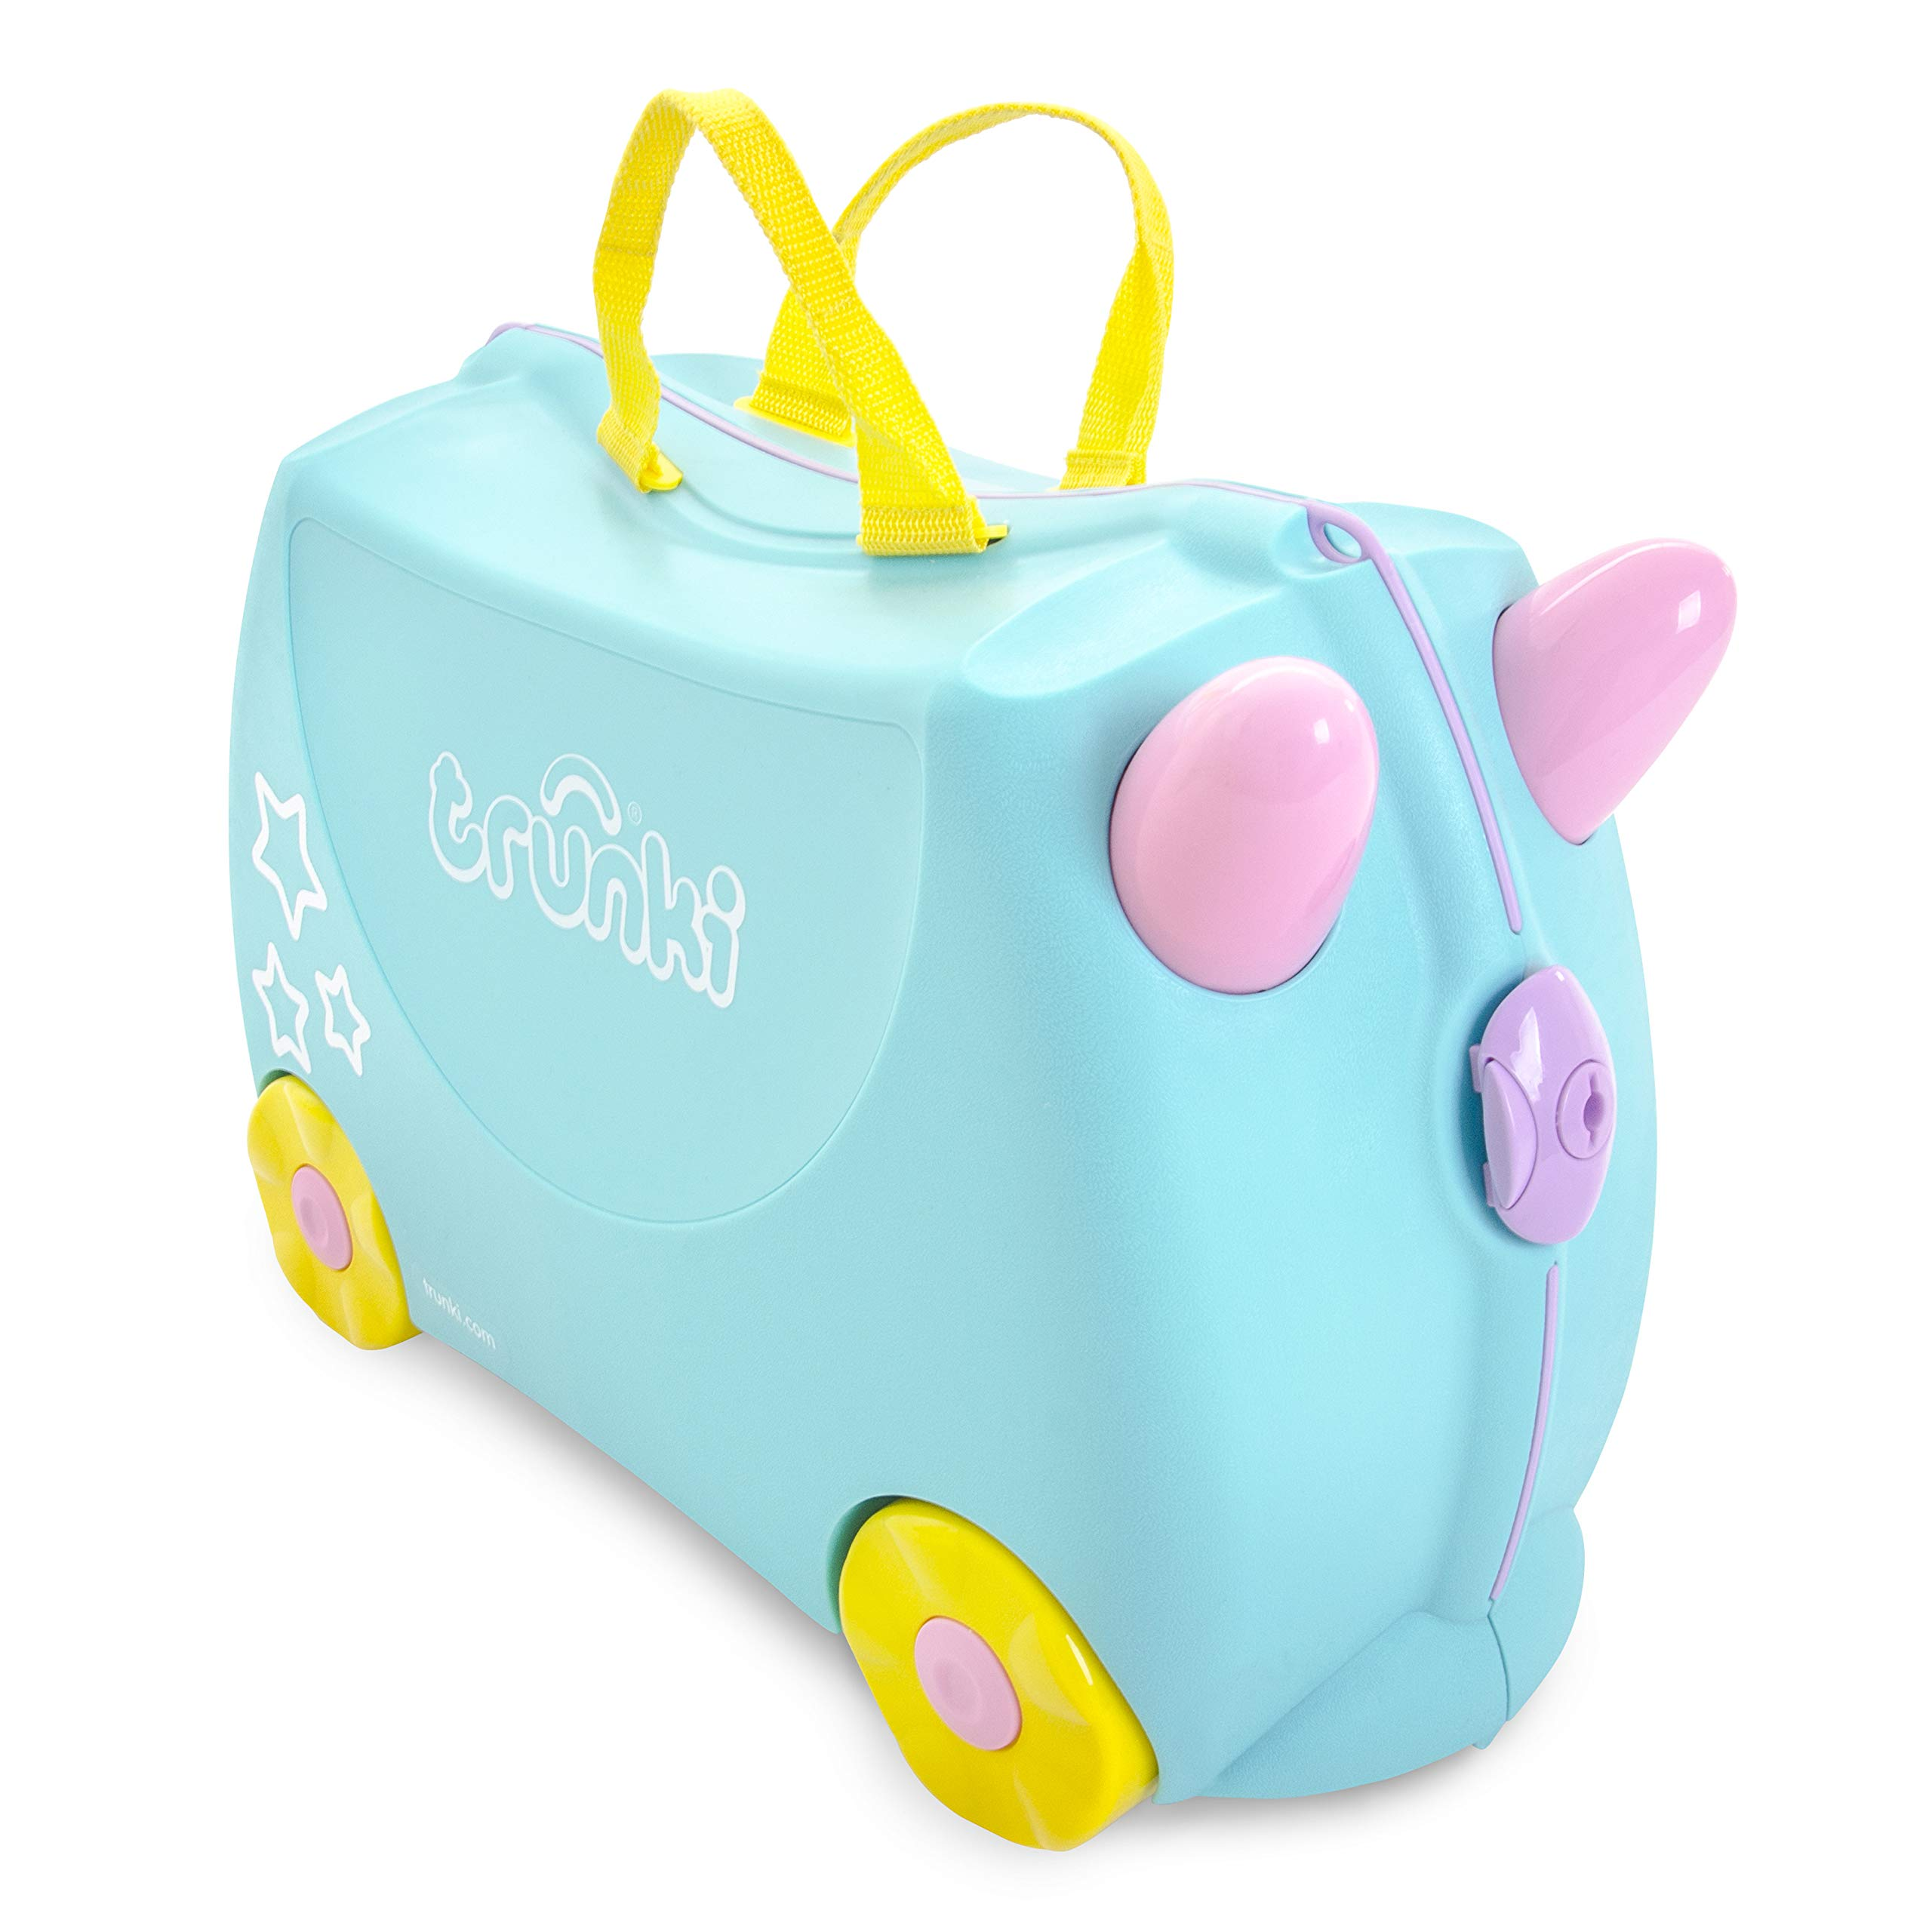 6d51db7260fc Trunki Original Kids Ride-On Suitcase and Carry-On Luggage - Una Unicorn (